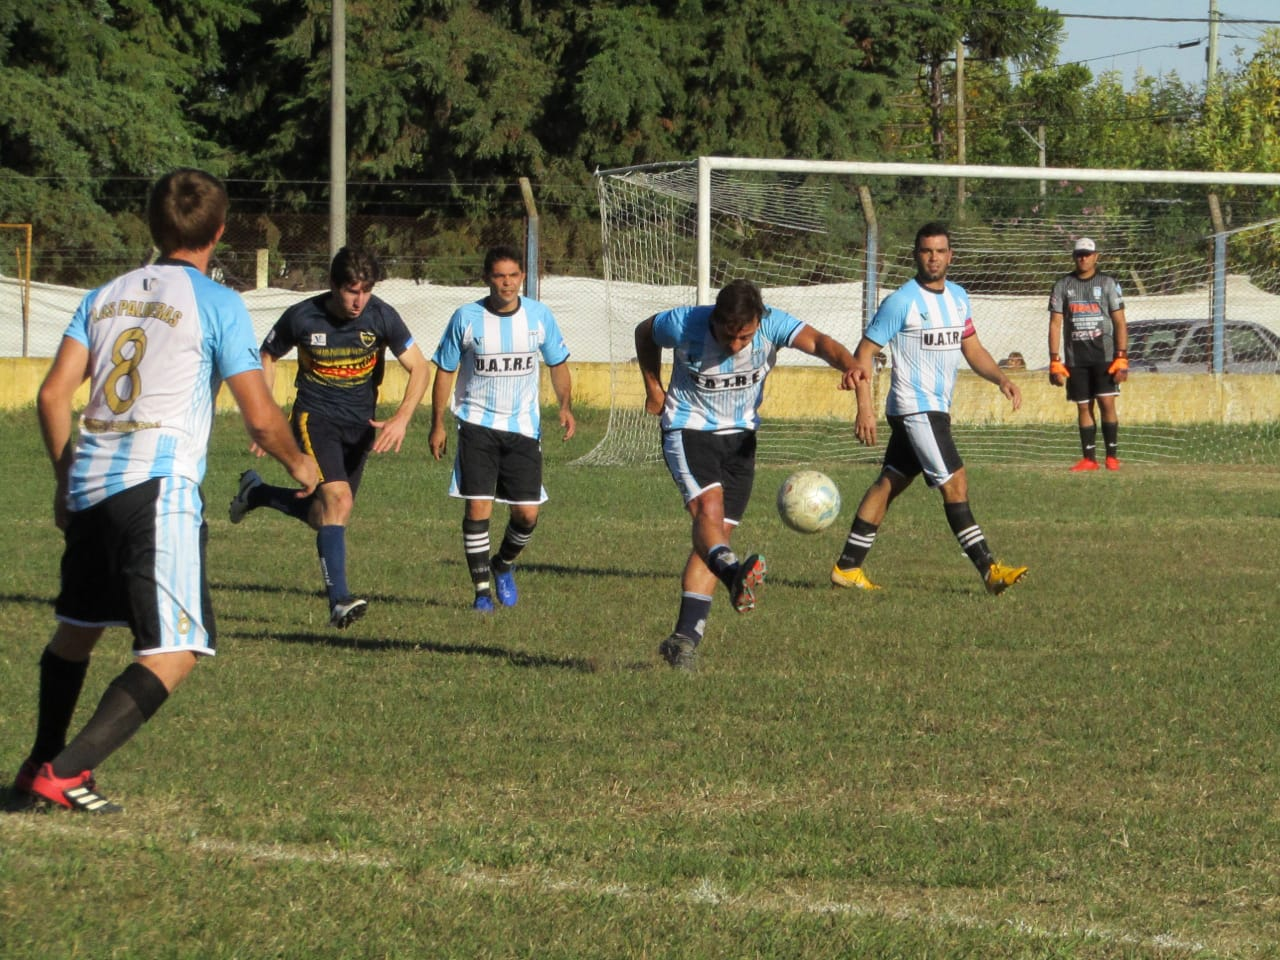 Fútbol local: El domingo a las 15 horas, Agricultores Club-Las Palmeras